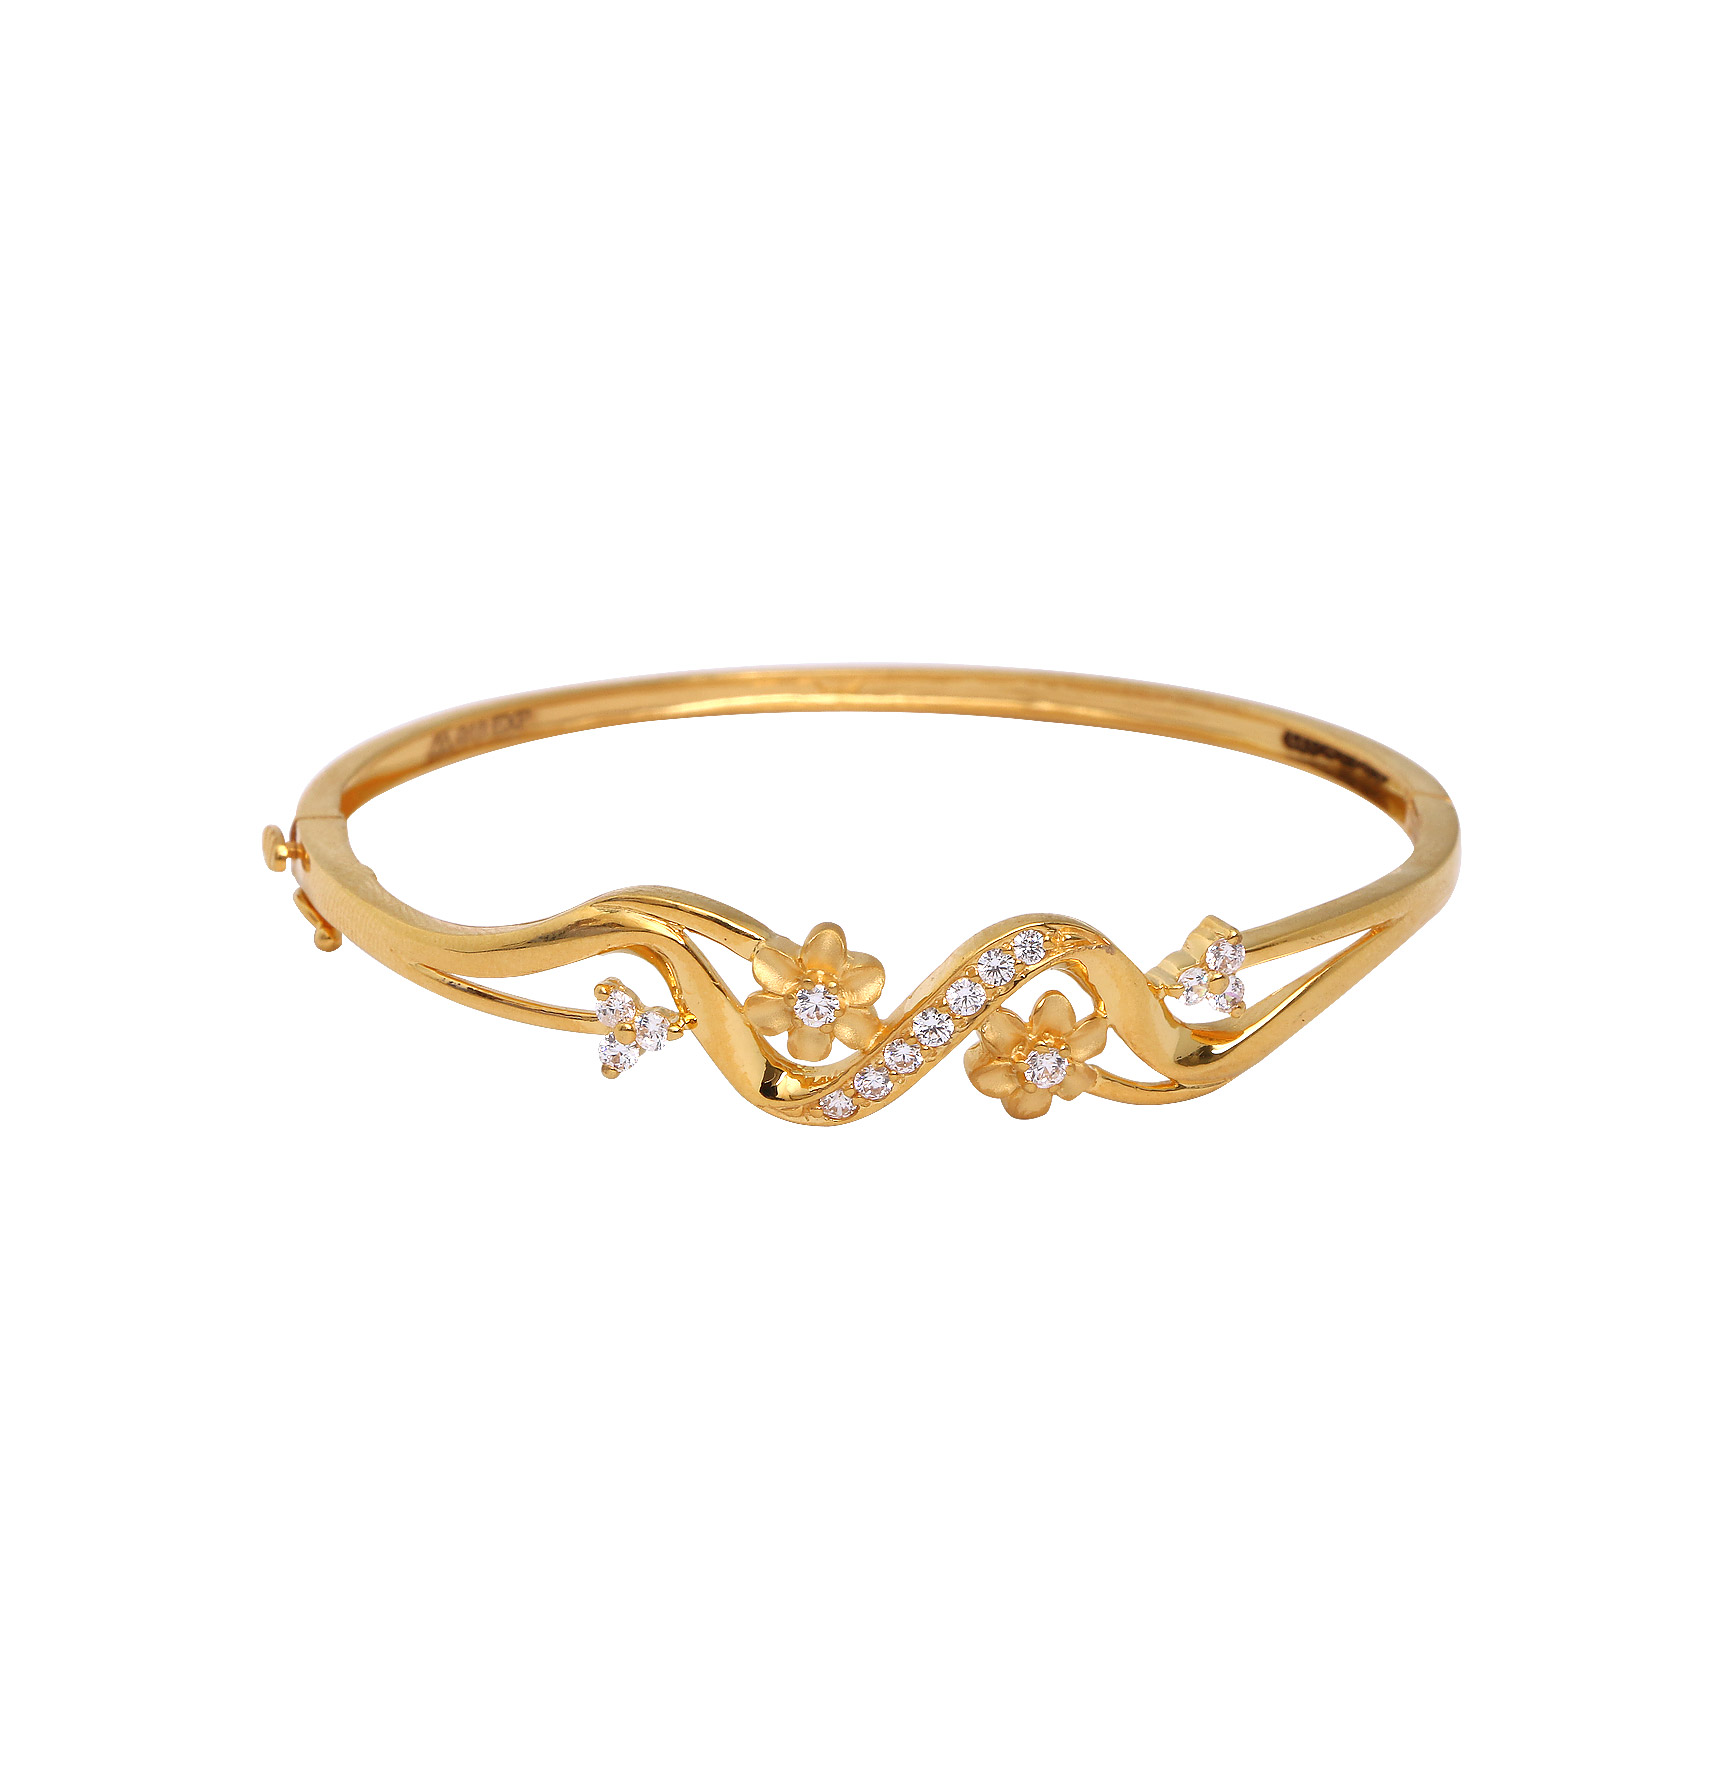 To acquire Bangle Gold bracelet pictures trends